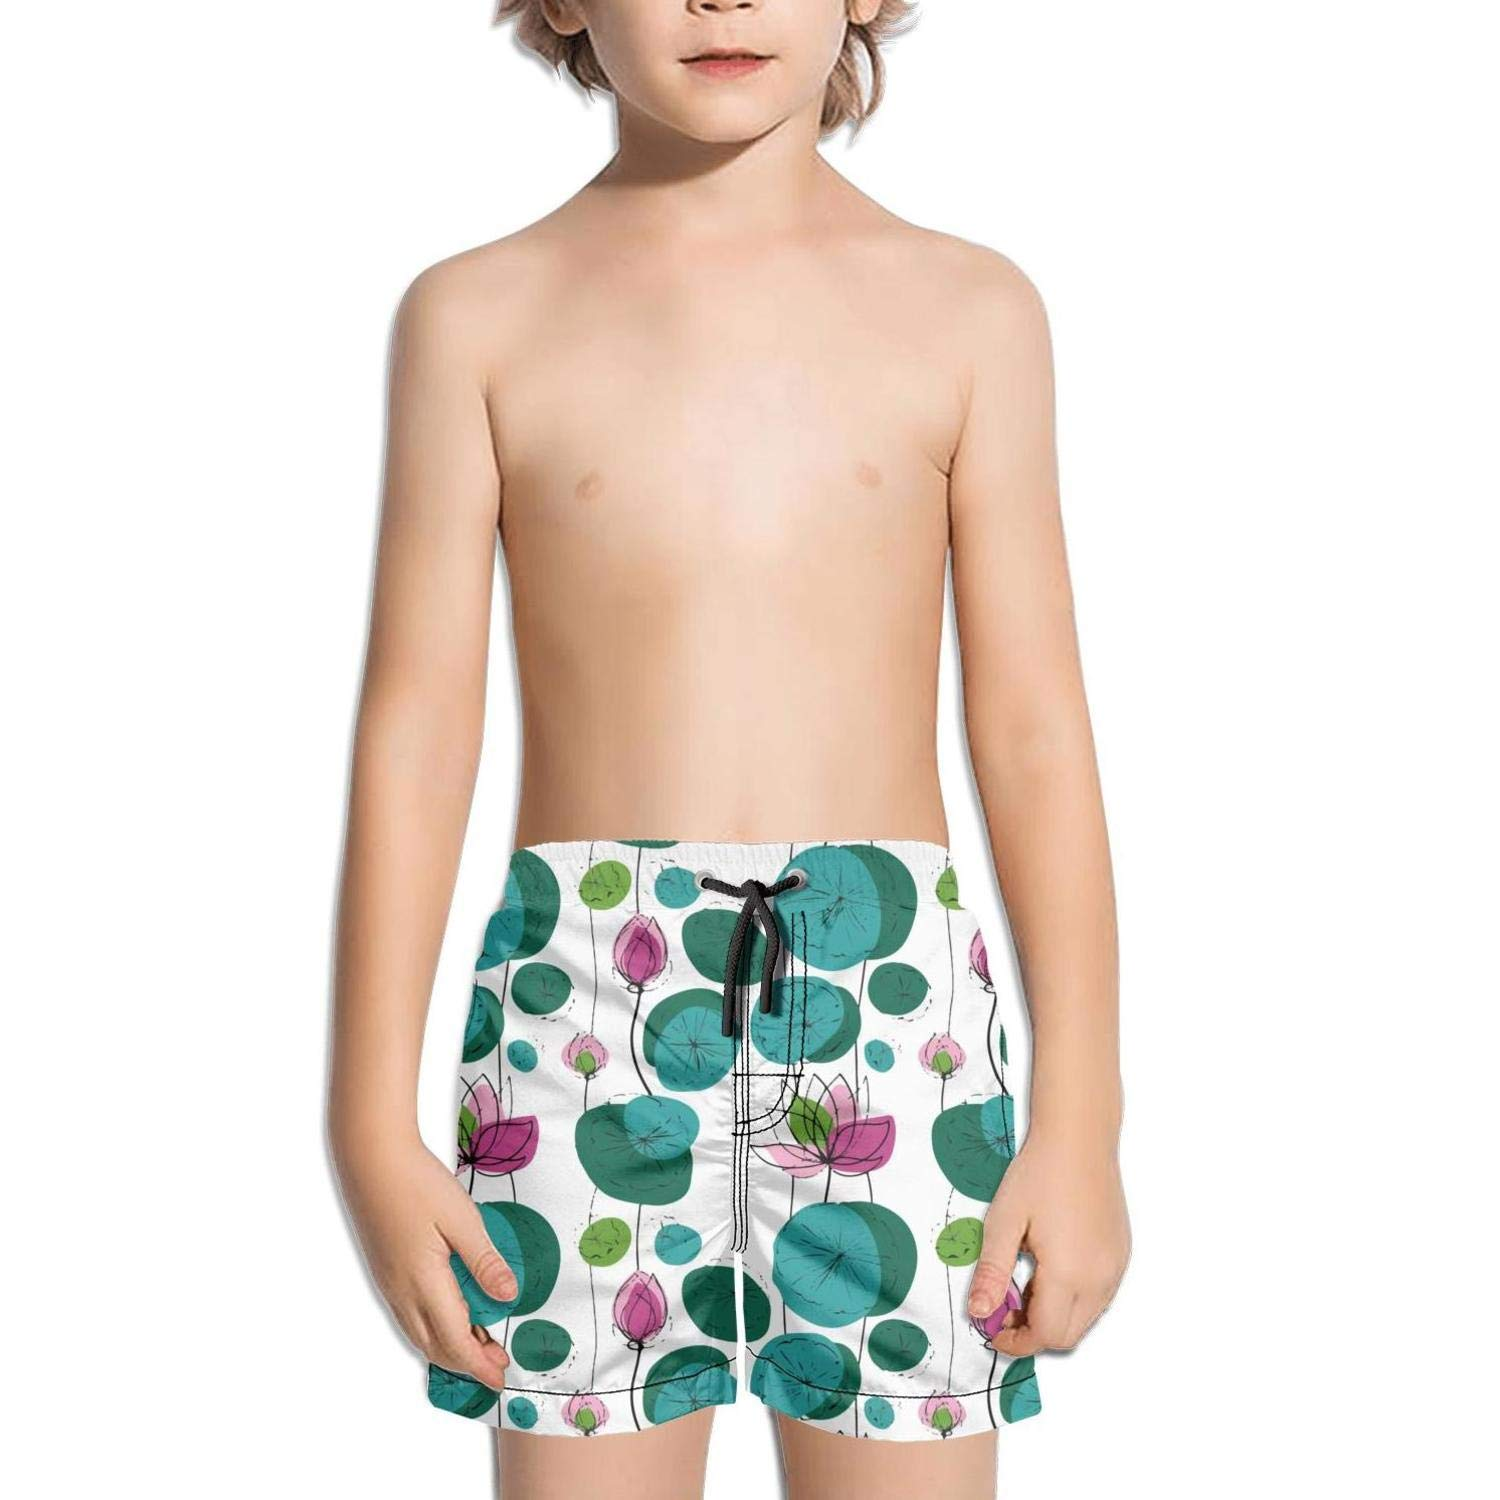 Lenard Hughes Boys Quick Dry Beach Shorts with Pockets Chinese Watchcolor Lotus Flower Swim Trunks for Summer